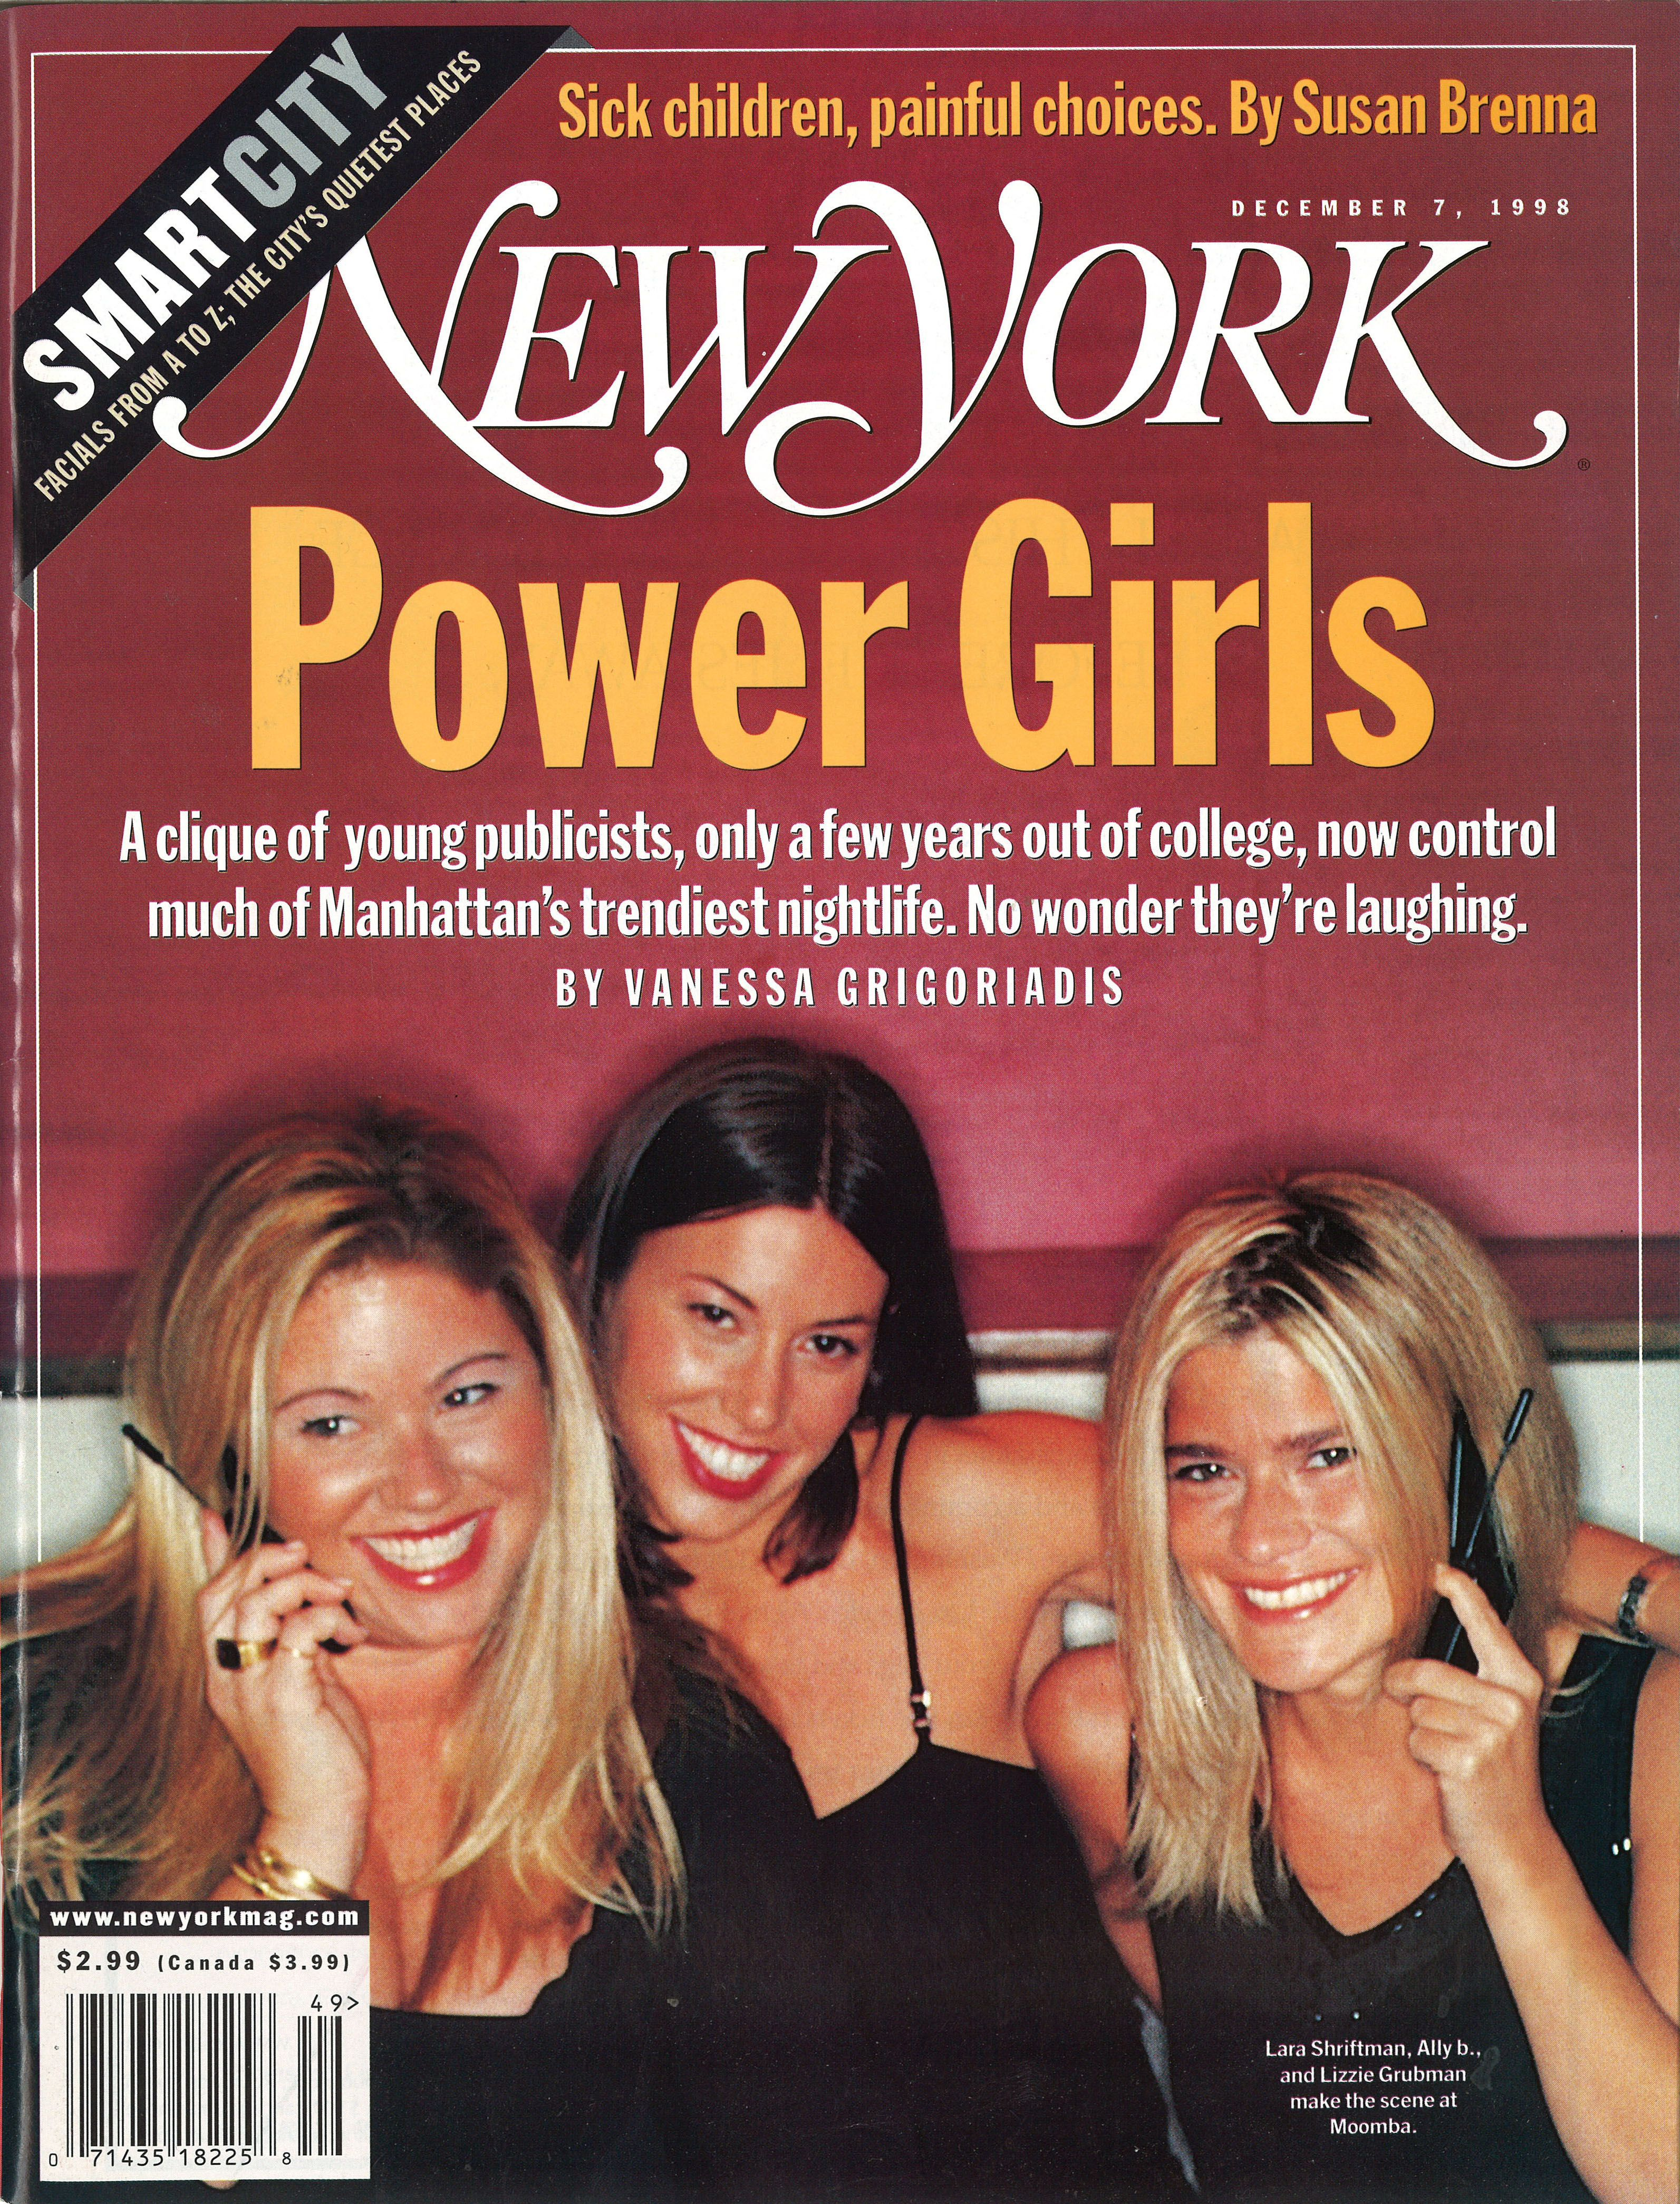 As Power Girls, 15 anos depois